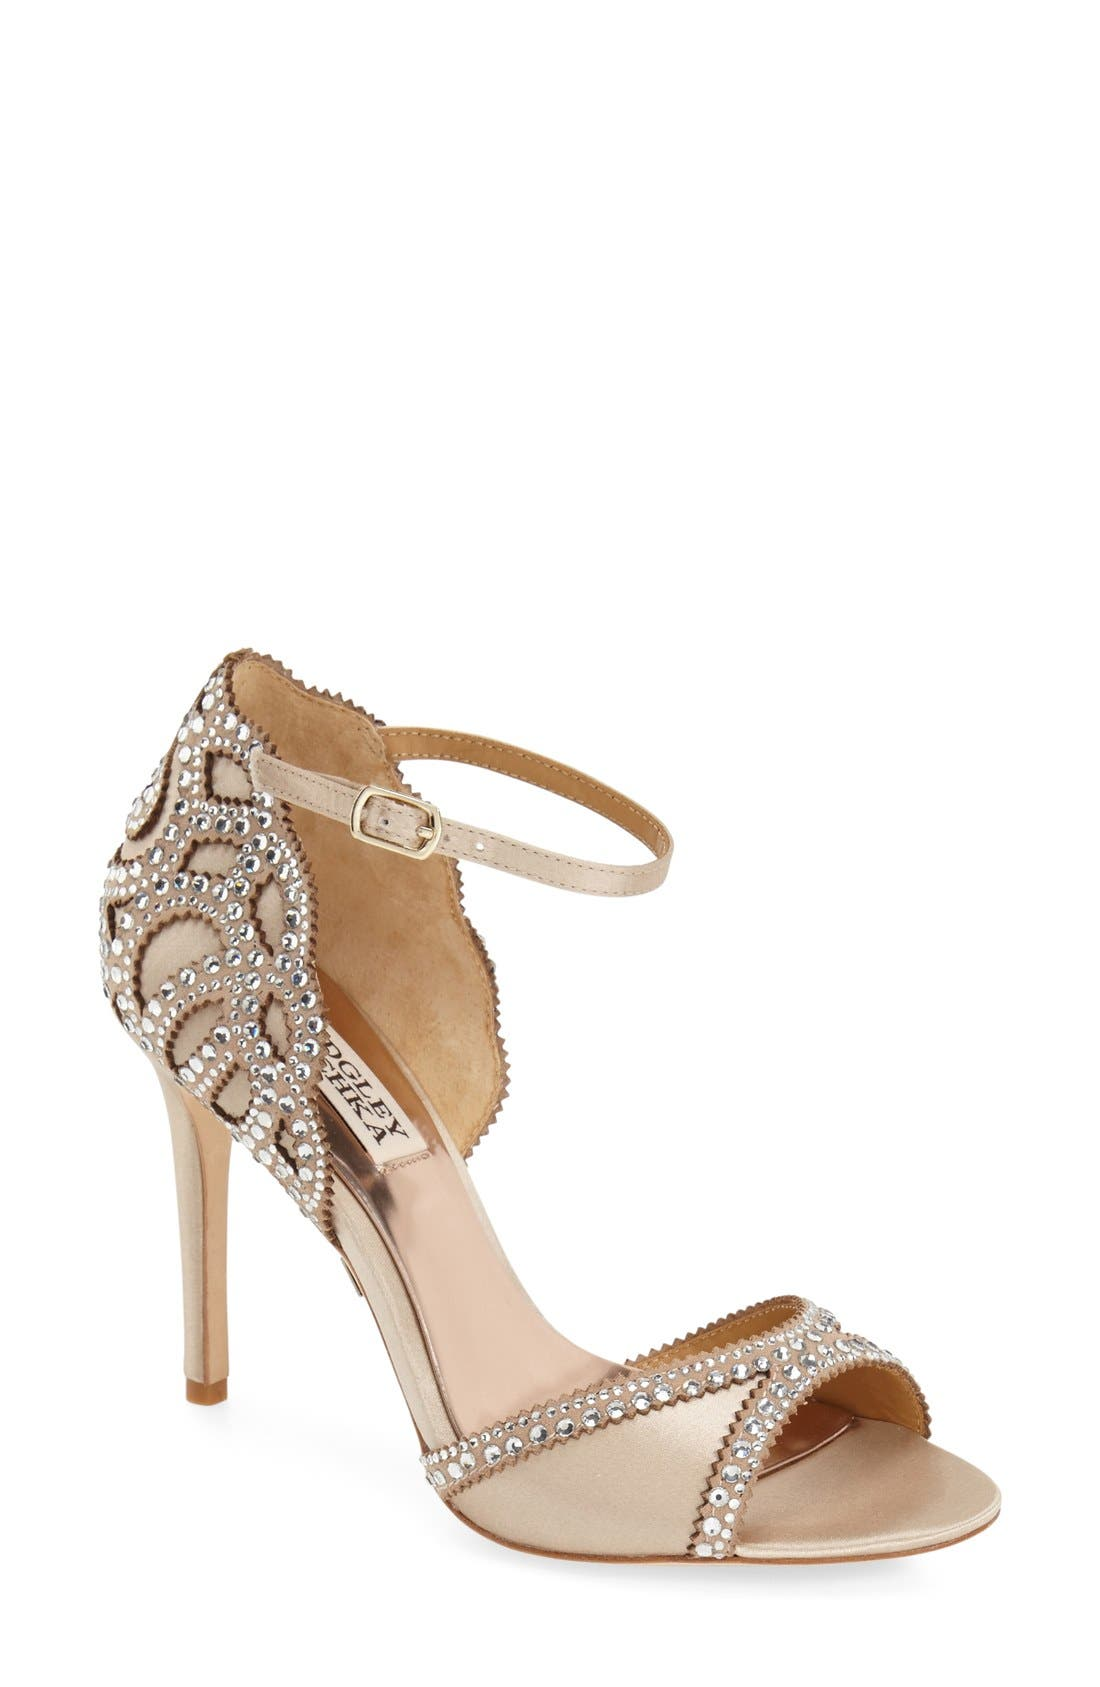 Main Image - Badgley Mischka 'Roxy' Sandal (Women)